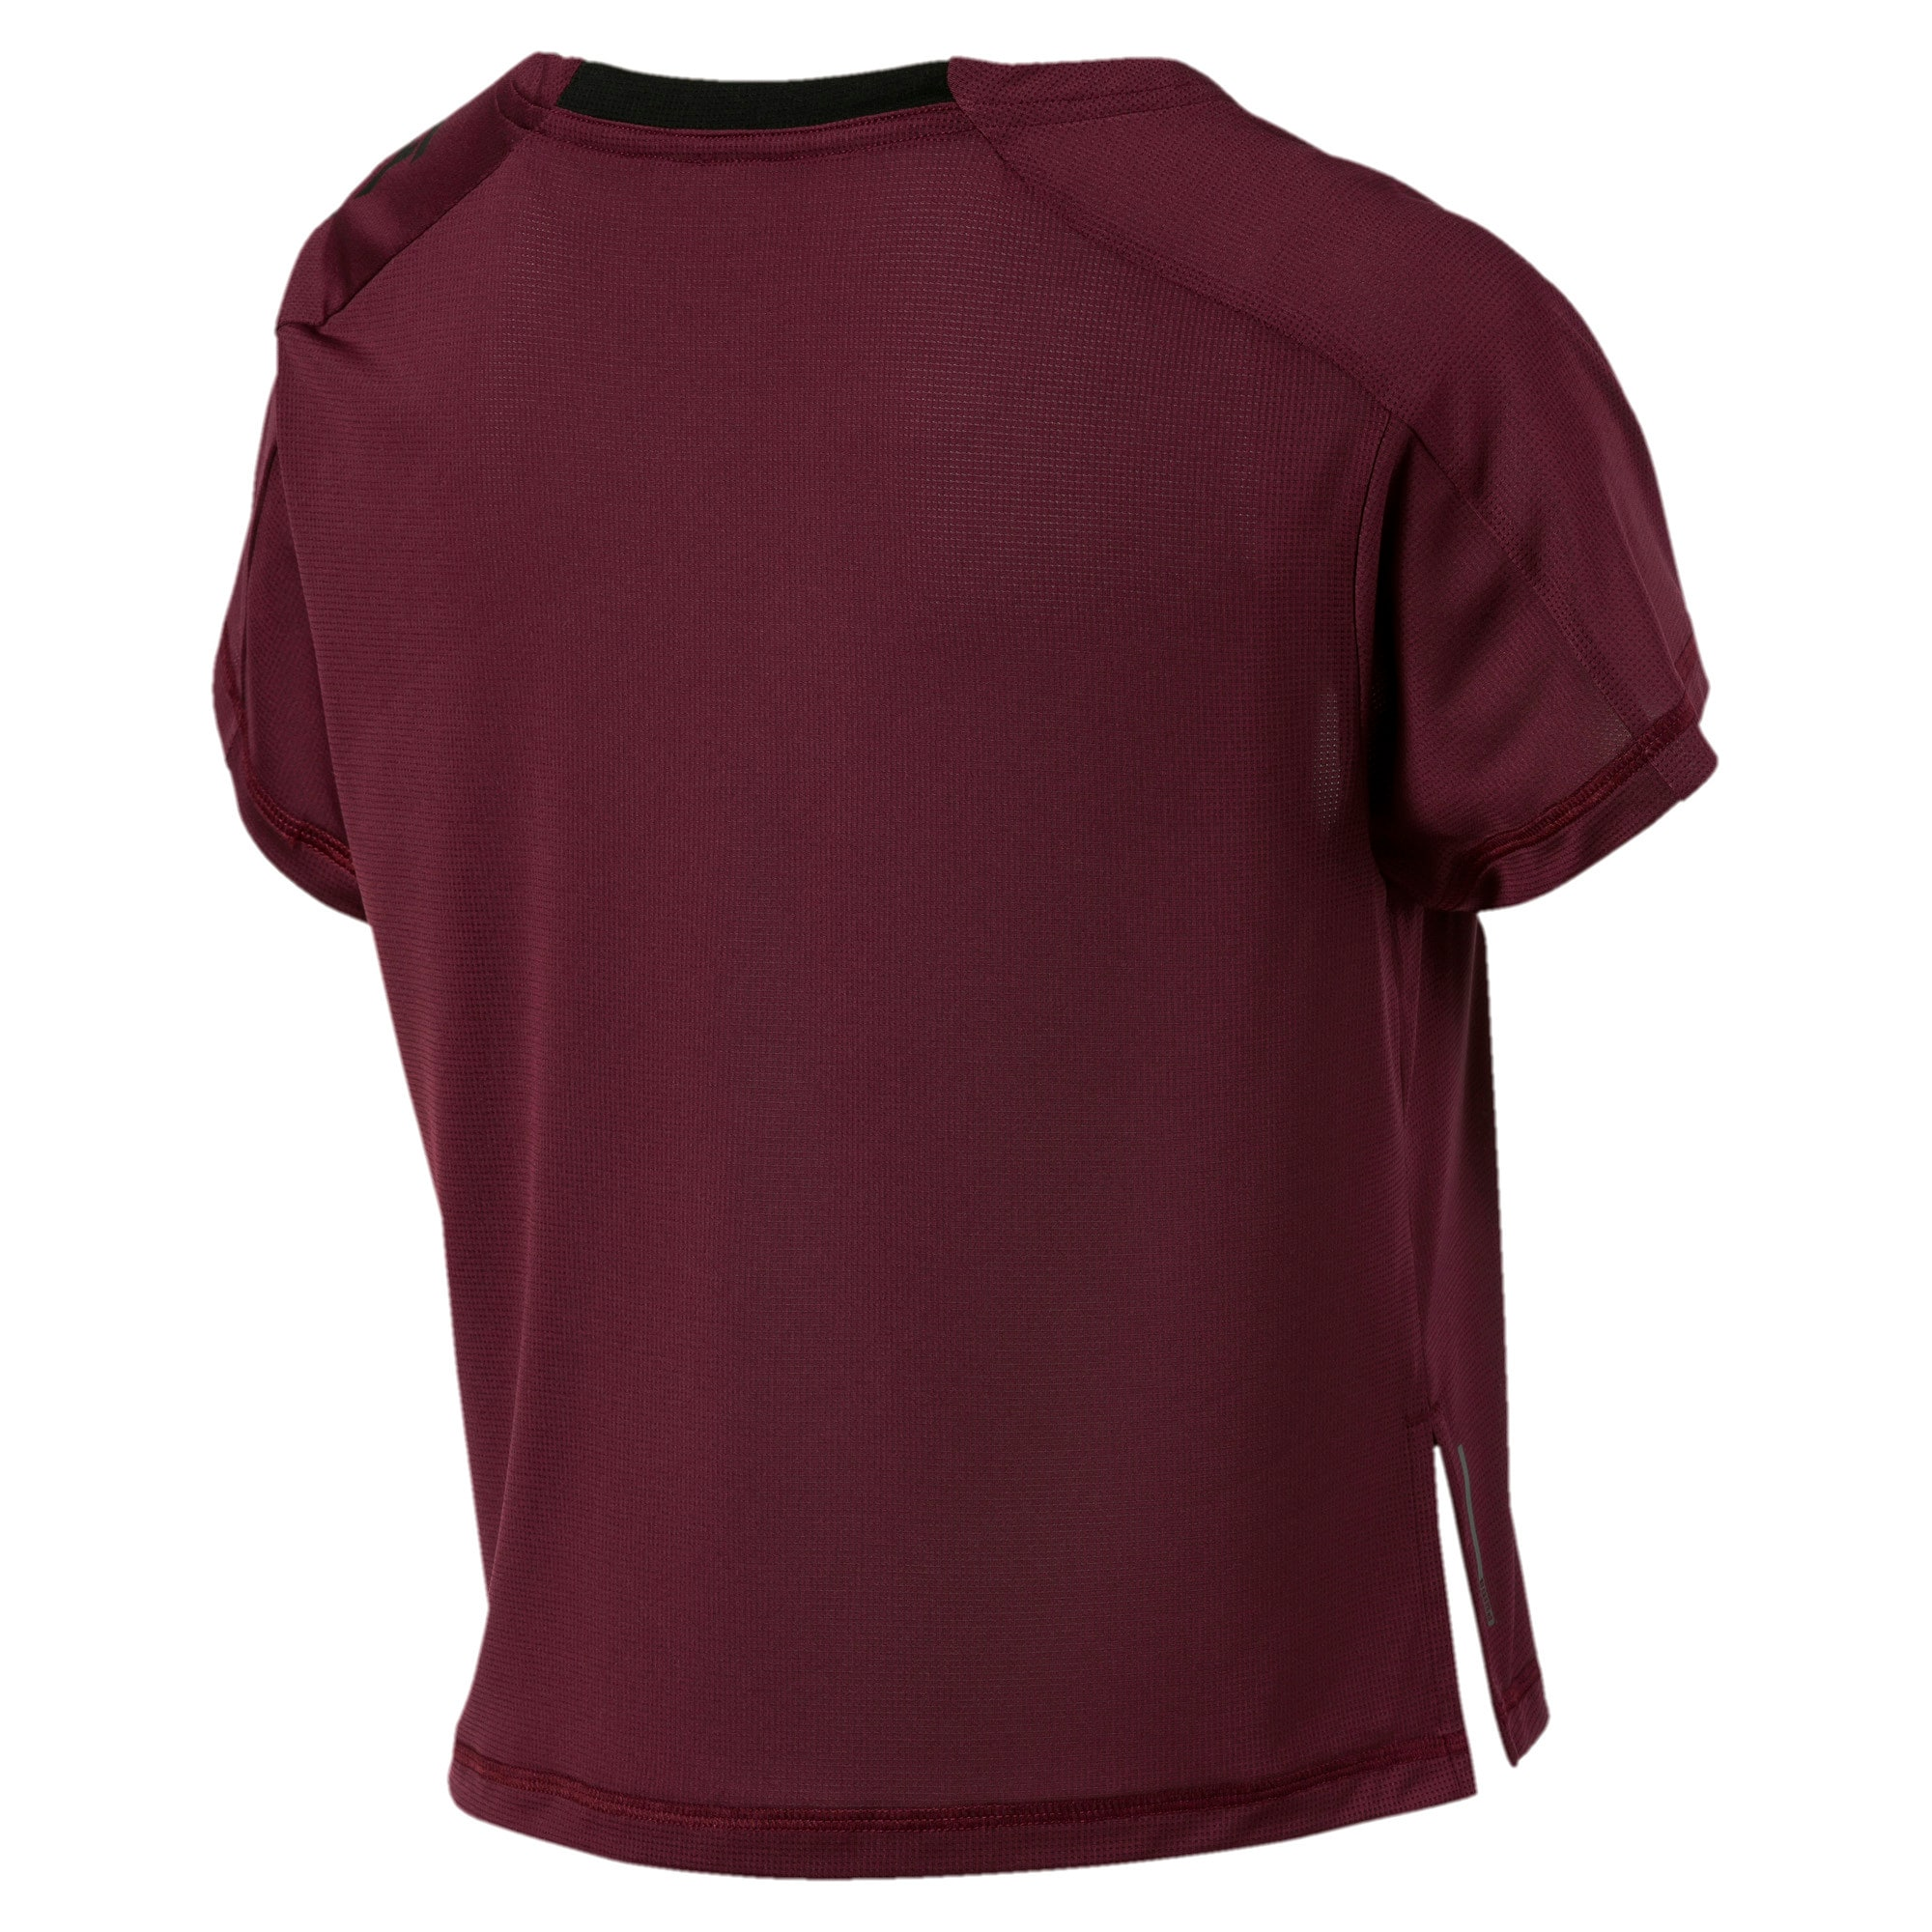 Thumbnail 5 of Cropped Short Sleeve Women's Training Tee, Vineyard Wine, medium